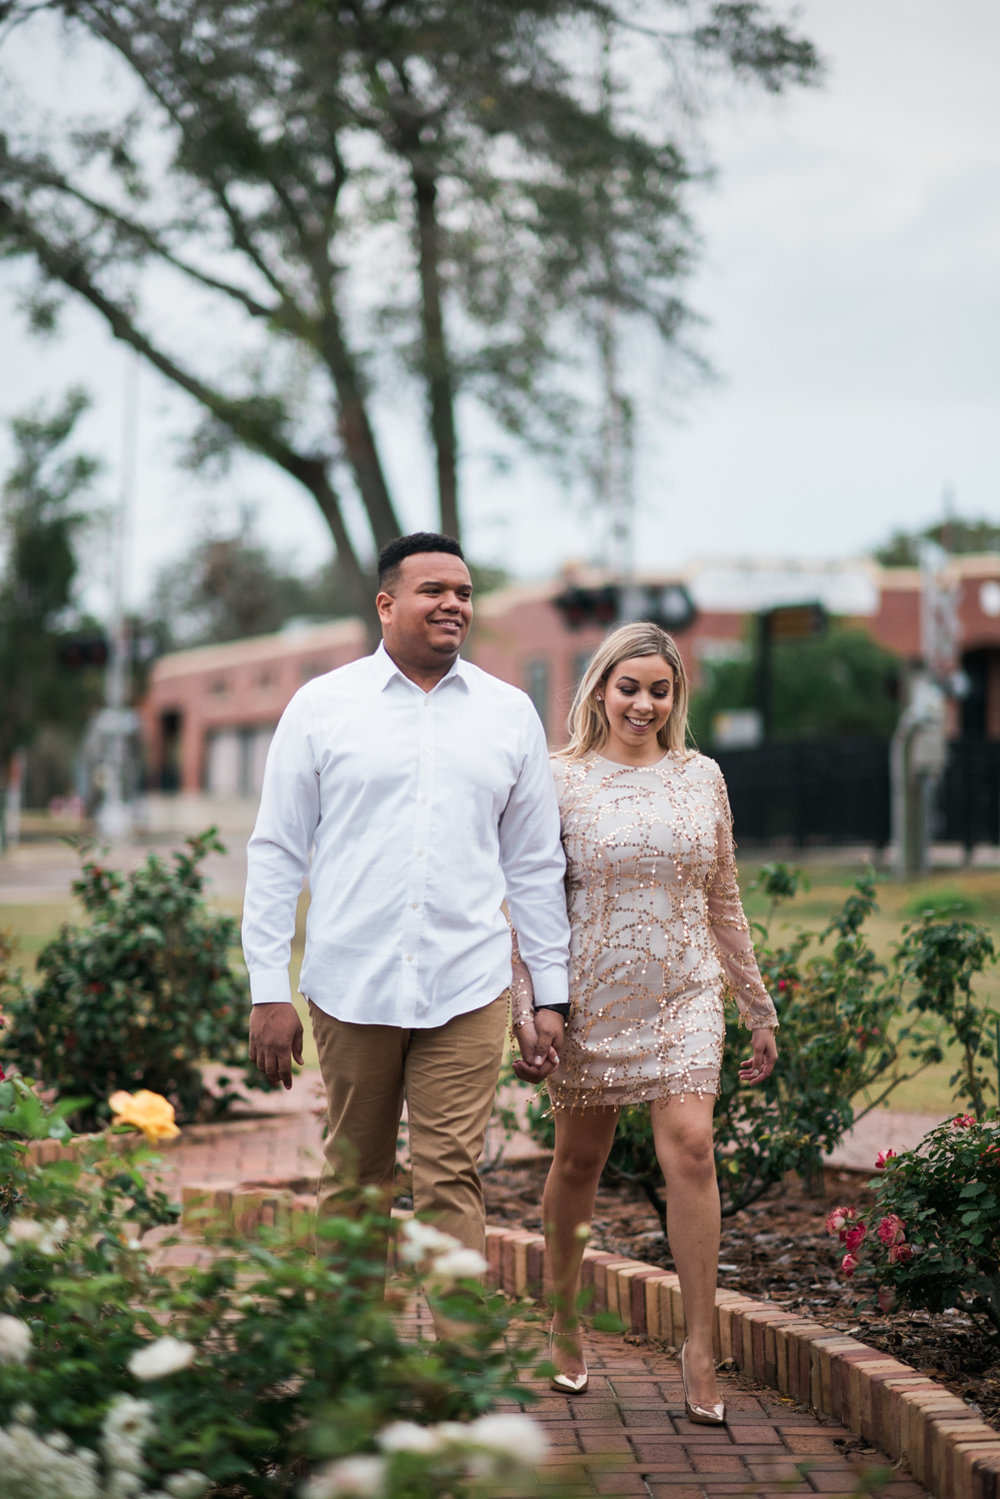 winter park engagement photographer-4.jpg